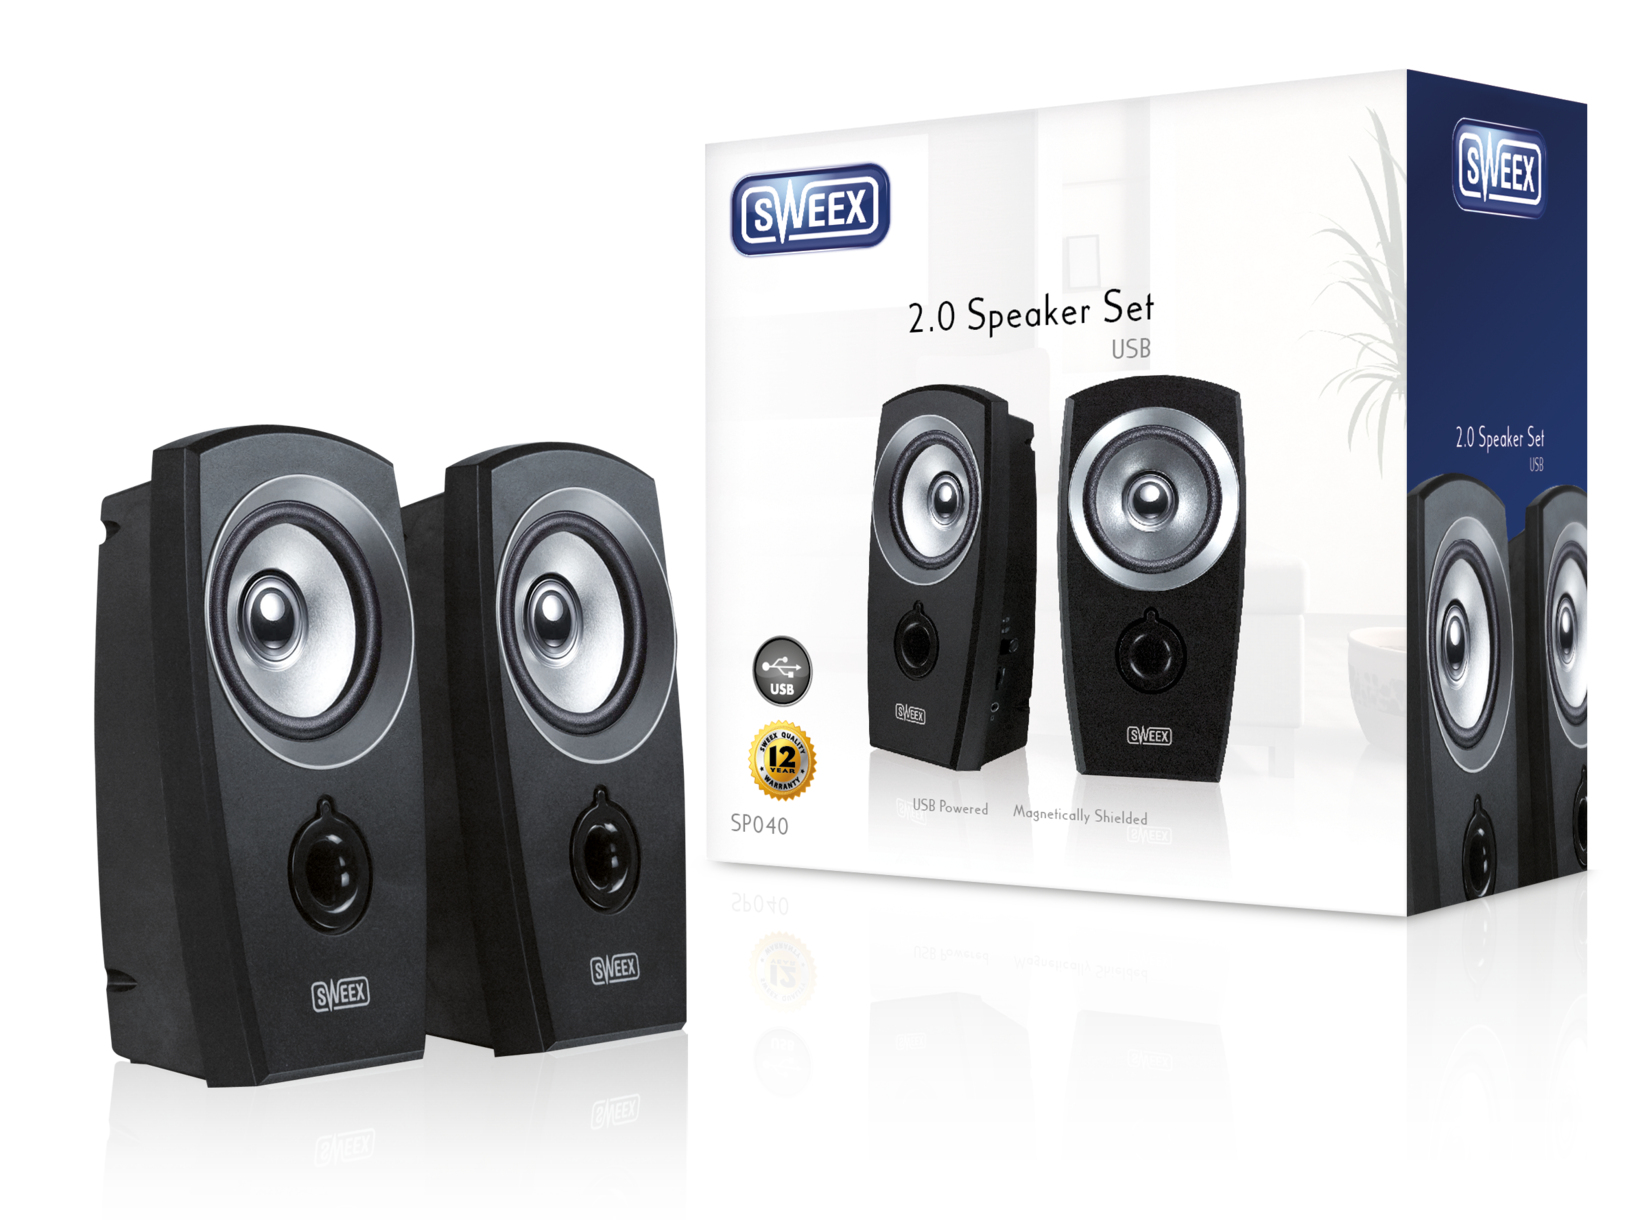 Image of 2.0 Speaker Set USB - Sweex